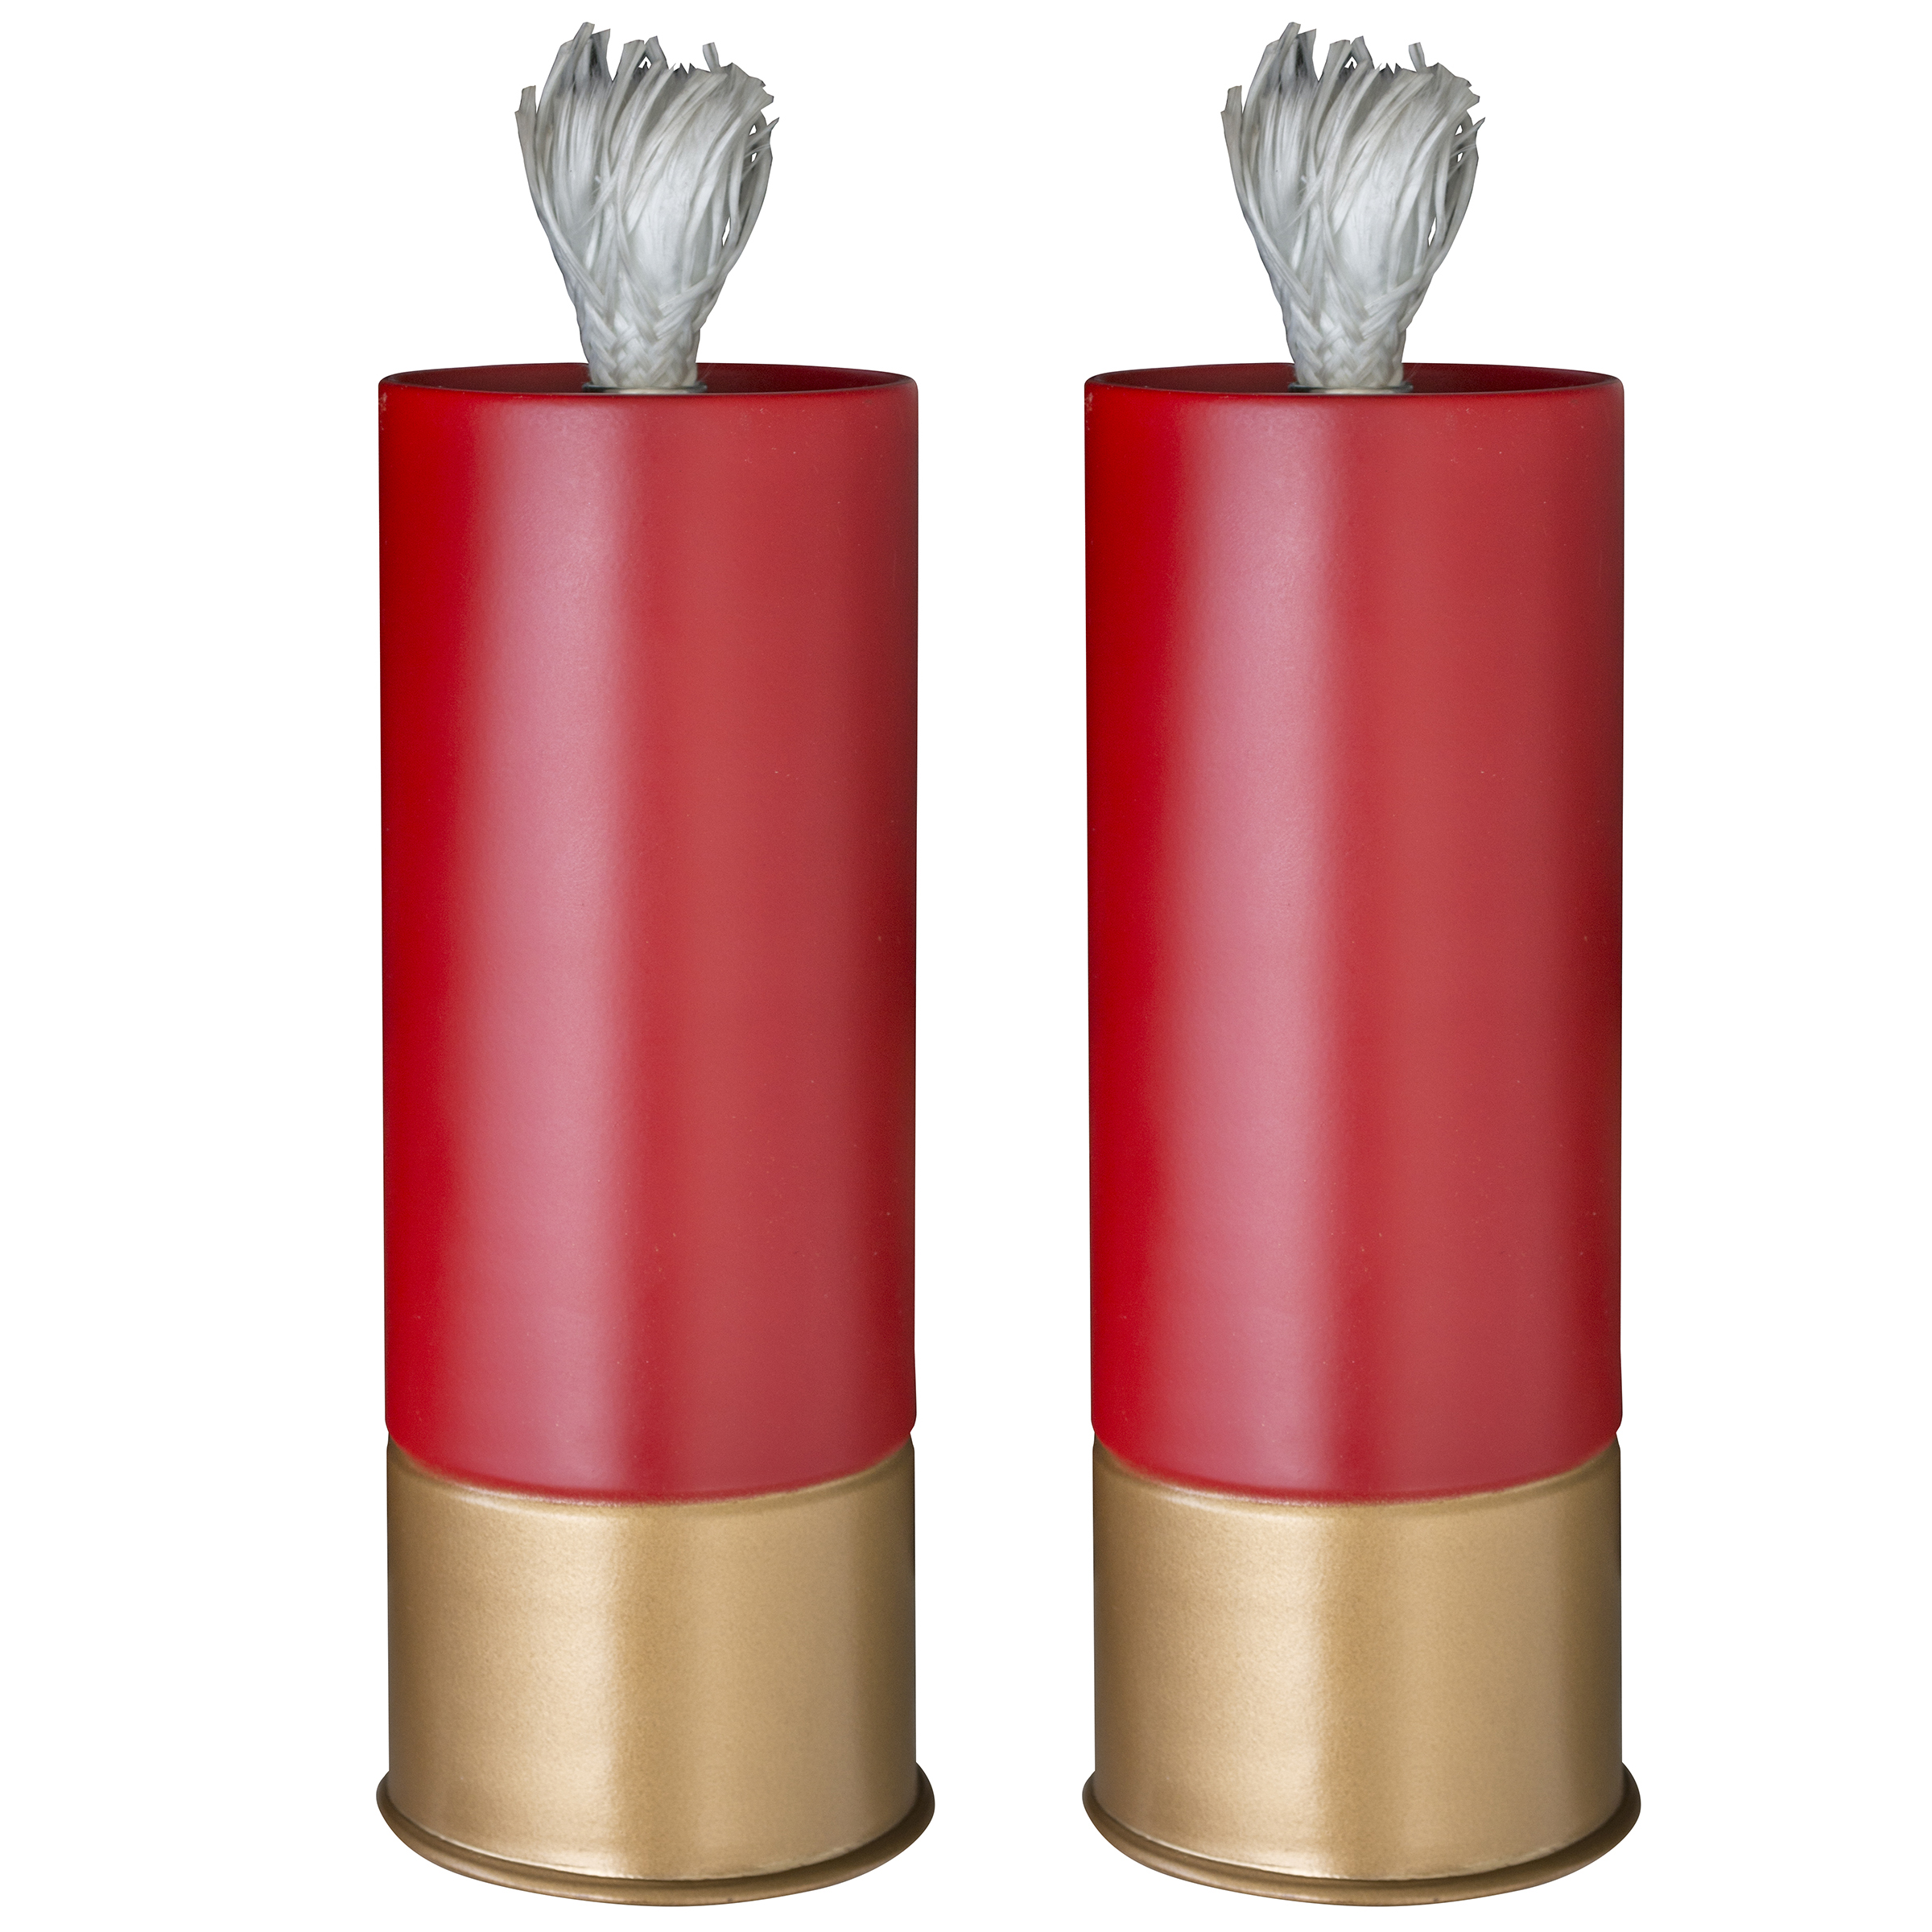 Shotgun Shell Patio Torch - 2 Piece Set